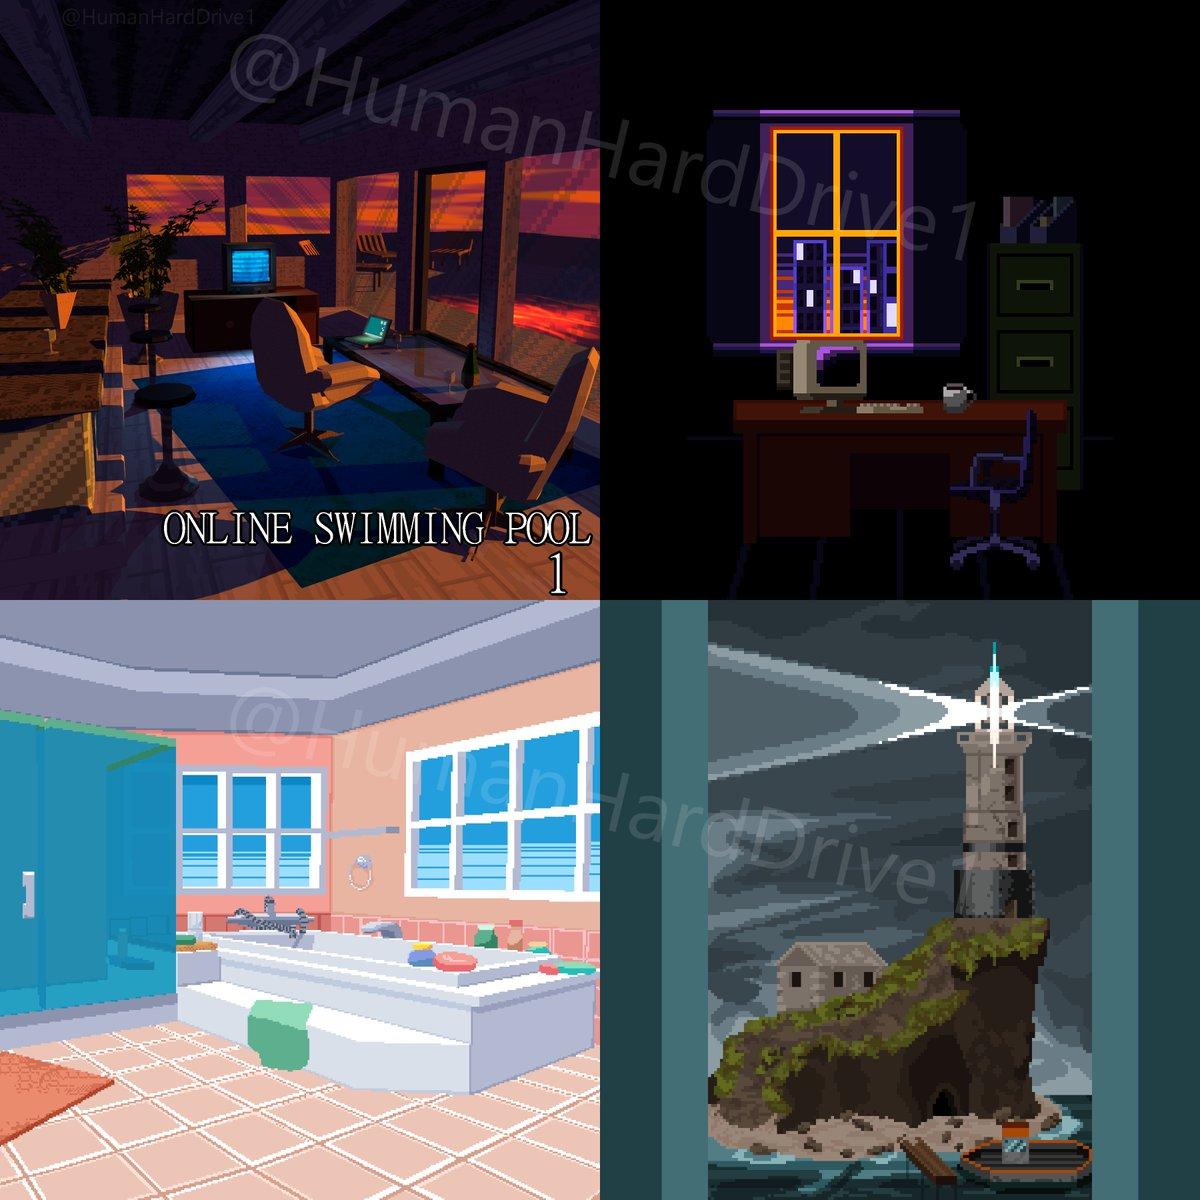 Happy #PortfolioDay ! I'm available! I'm a #pixelart artist and I can make sprites or tiles for your game. Also I can make a cool #lowpoly scene for you to use as an album cover or to help with fleshing out your worlds or stories